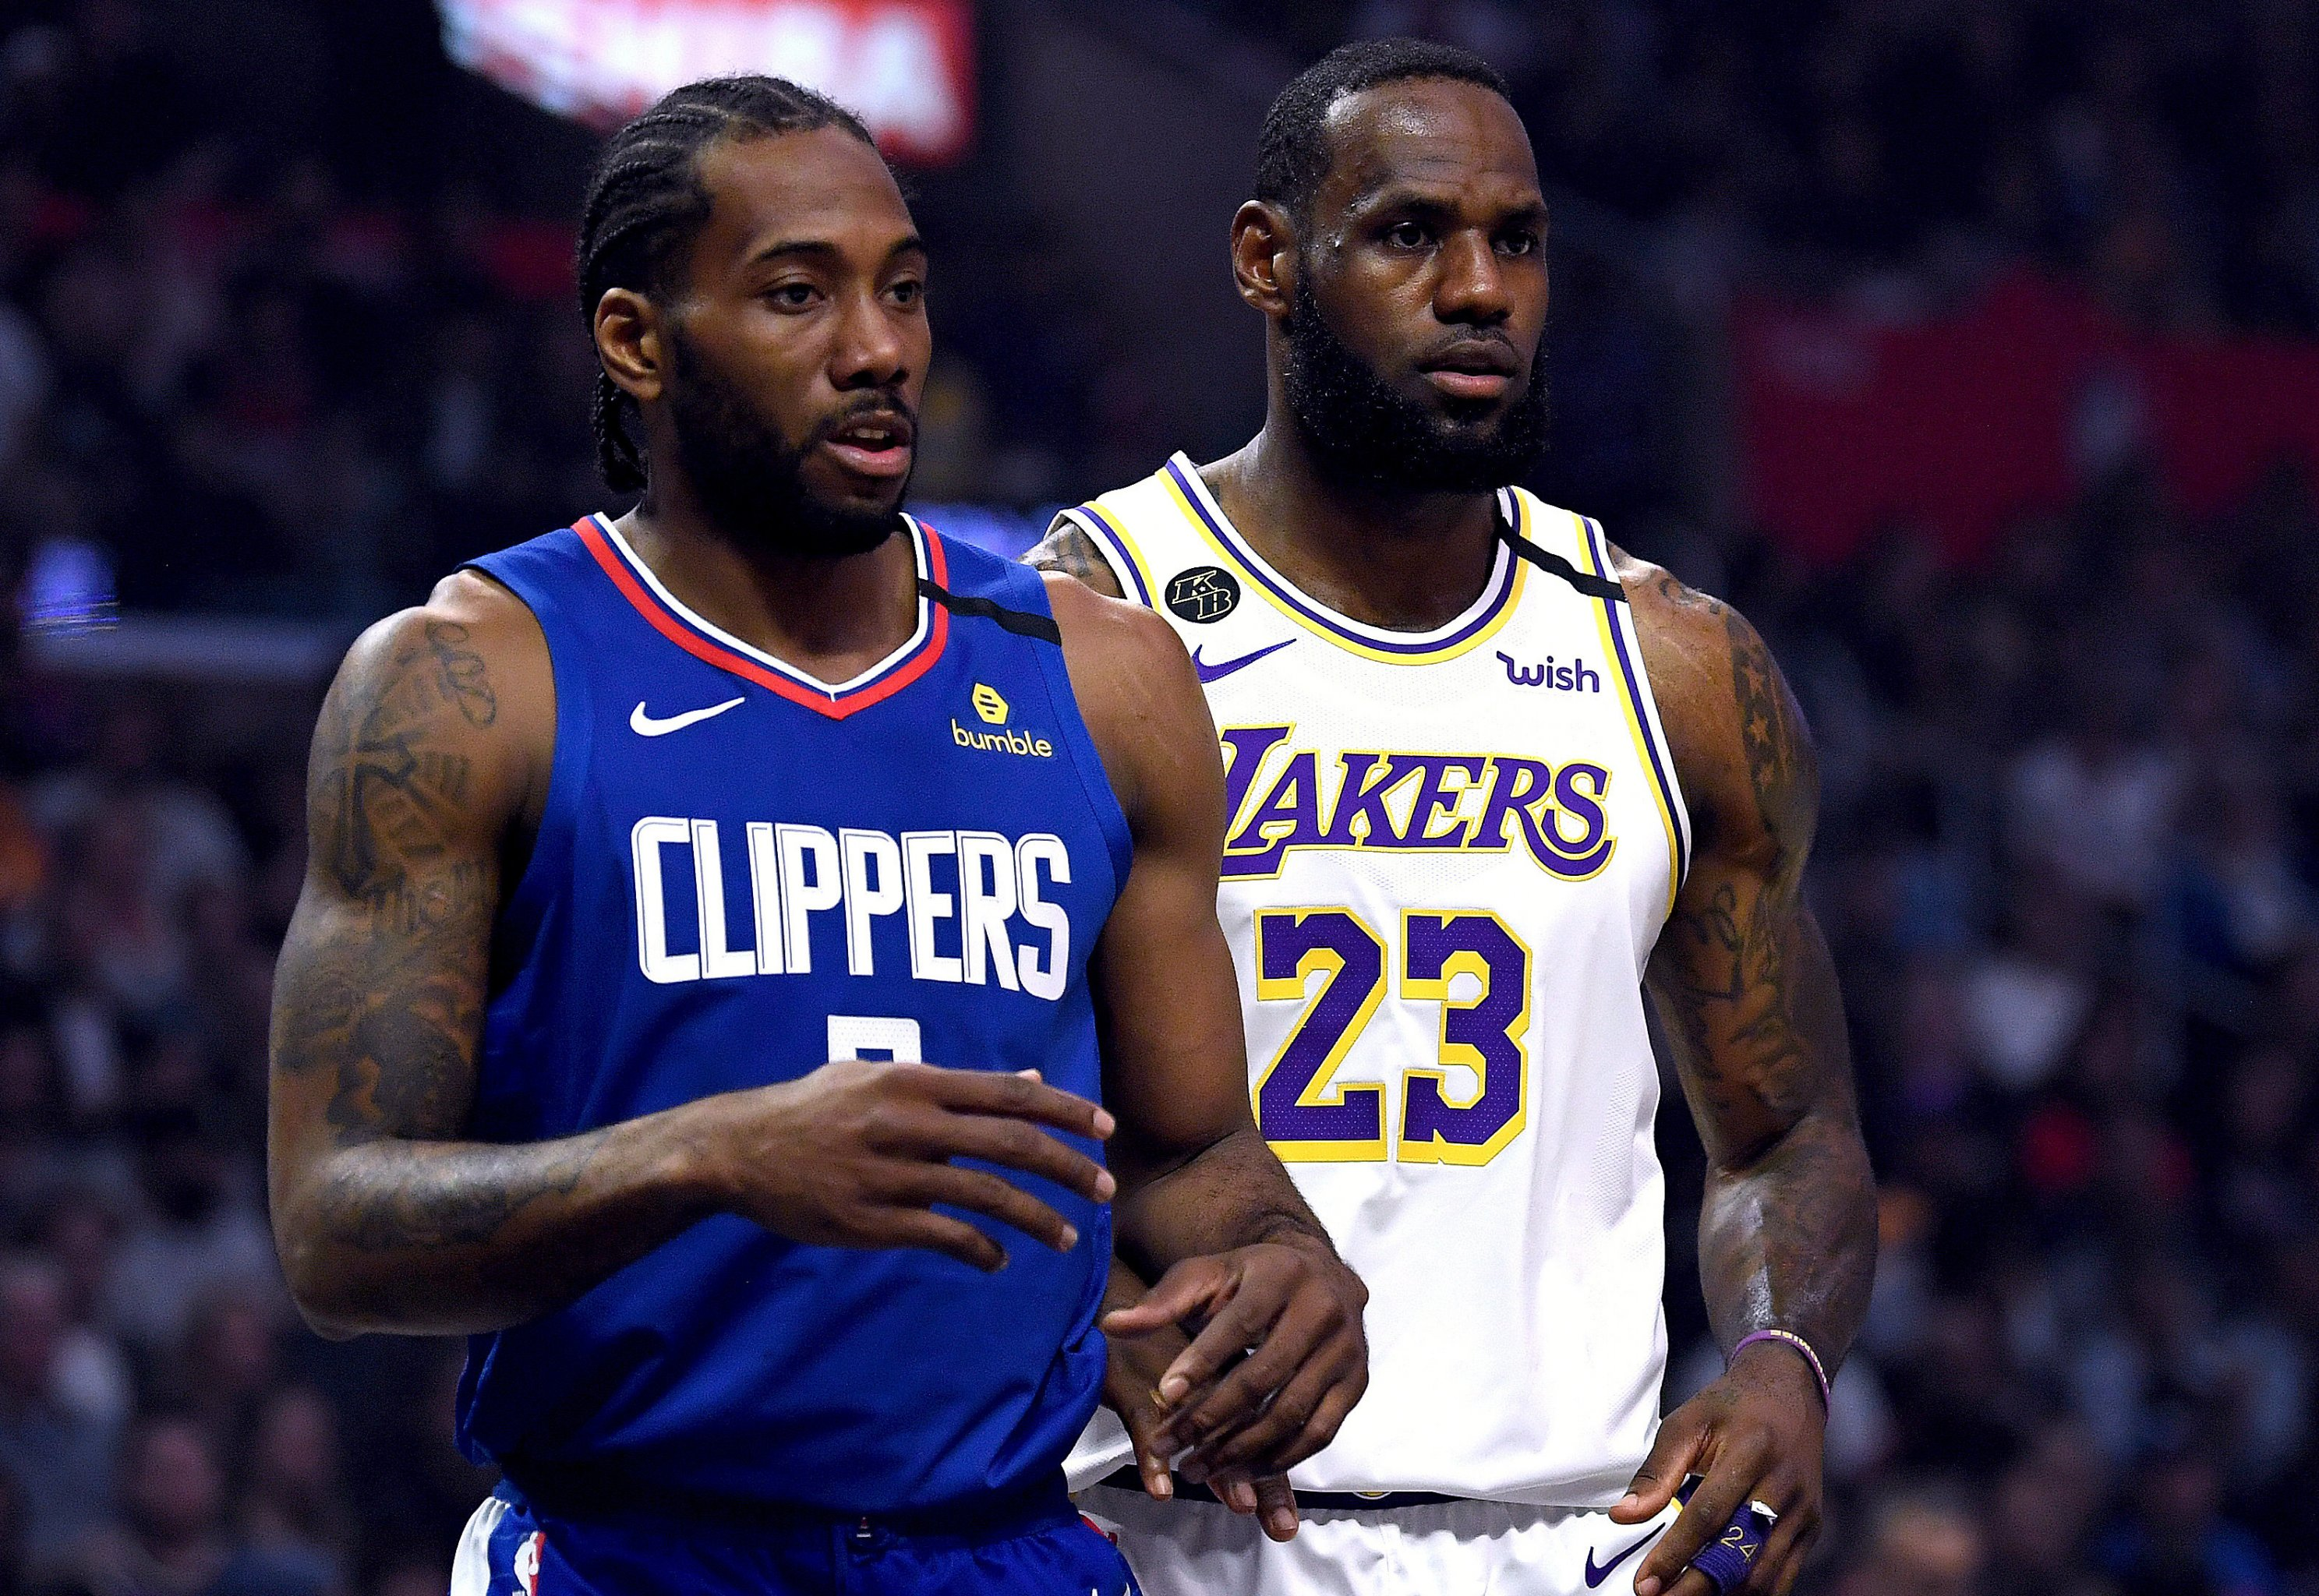 B R Nba Staff Do Los Angeles Lakers Or La Clippers Have The Brighter Future Bleacher Report Latest News Videos And Highlights